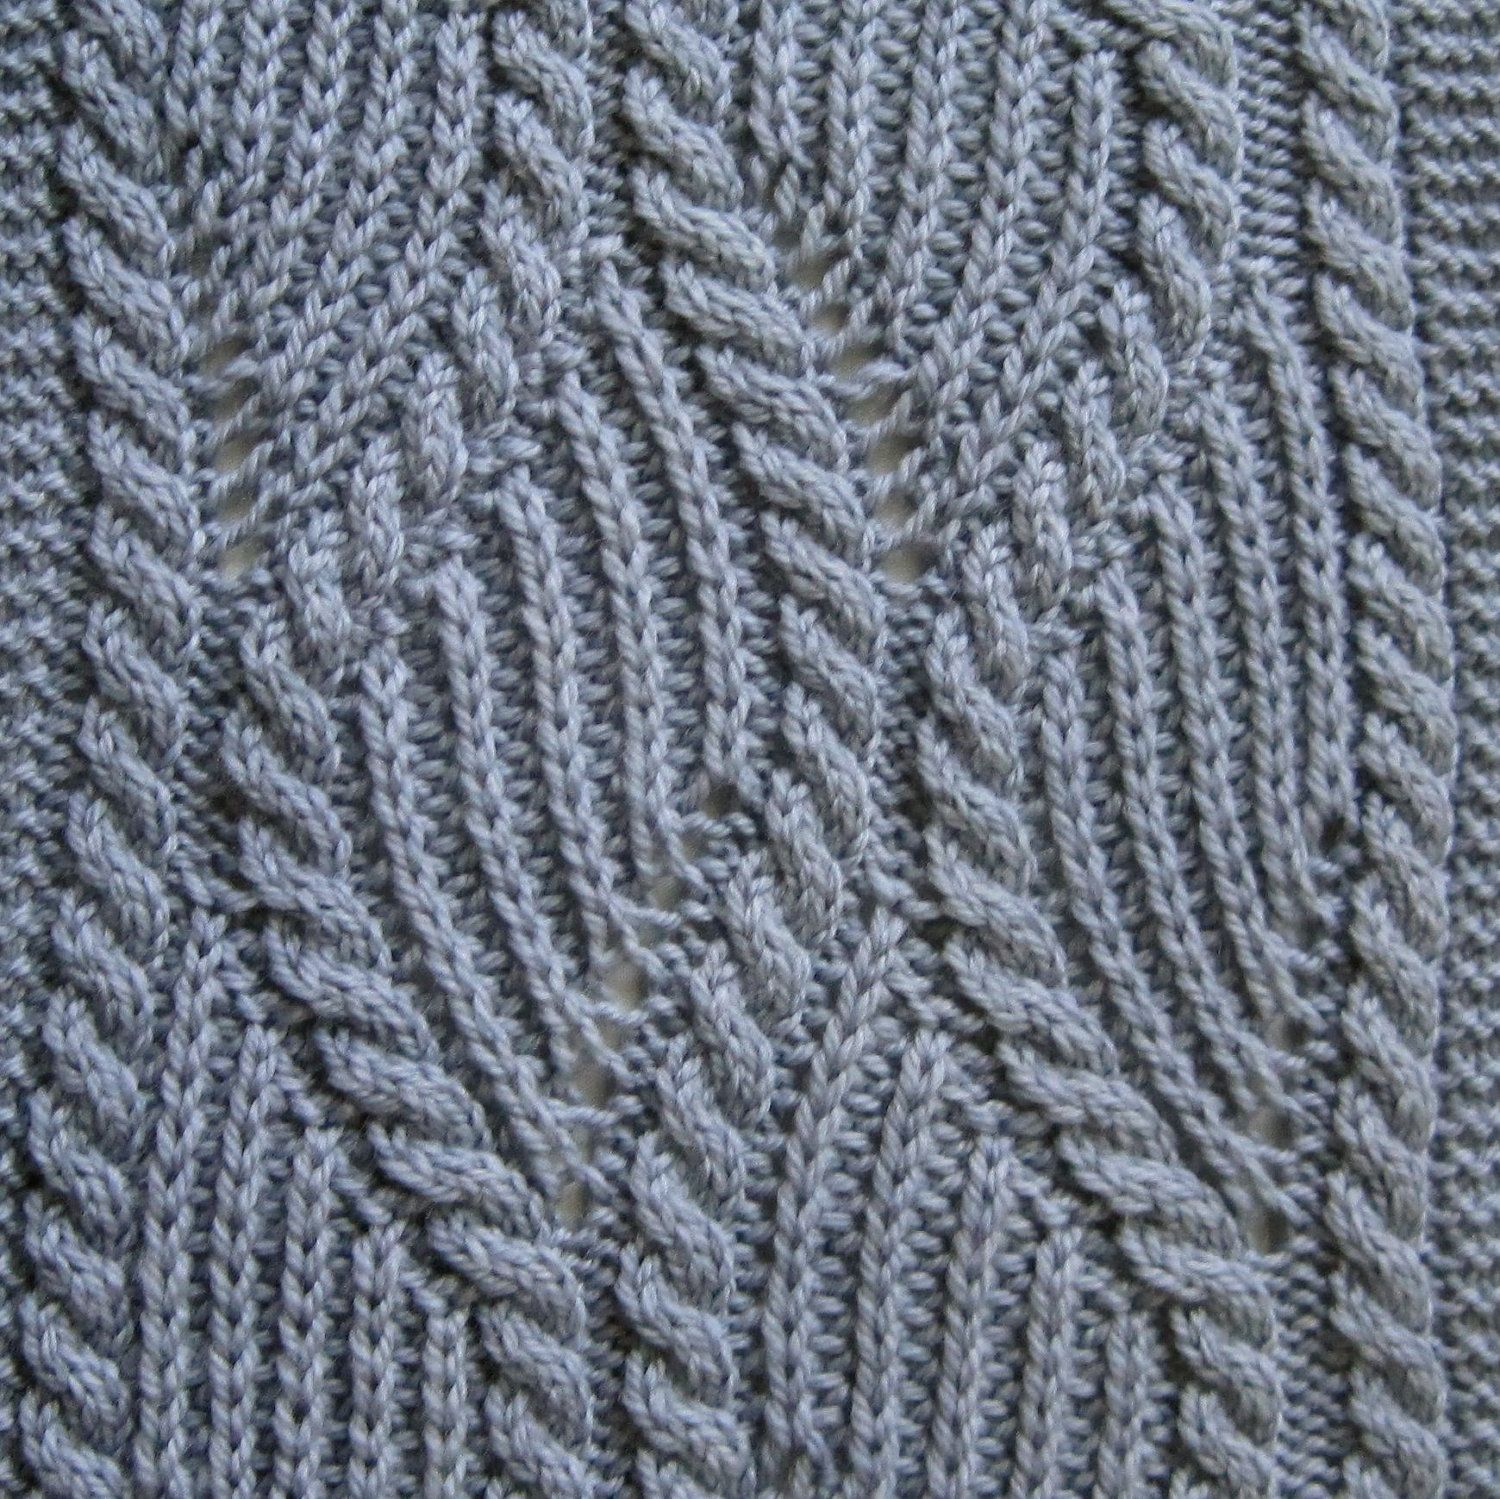 Knit Scarf Pattern: Brioche and Traveling Cable Knitting Scarf ...